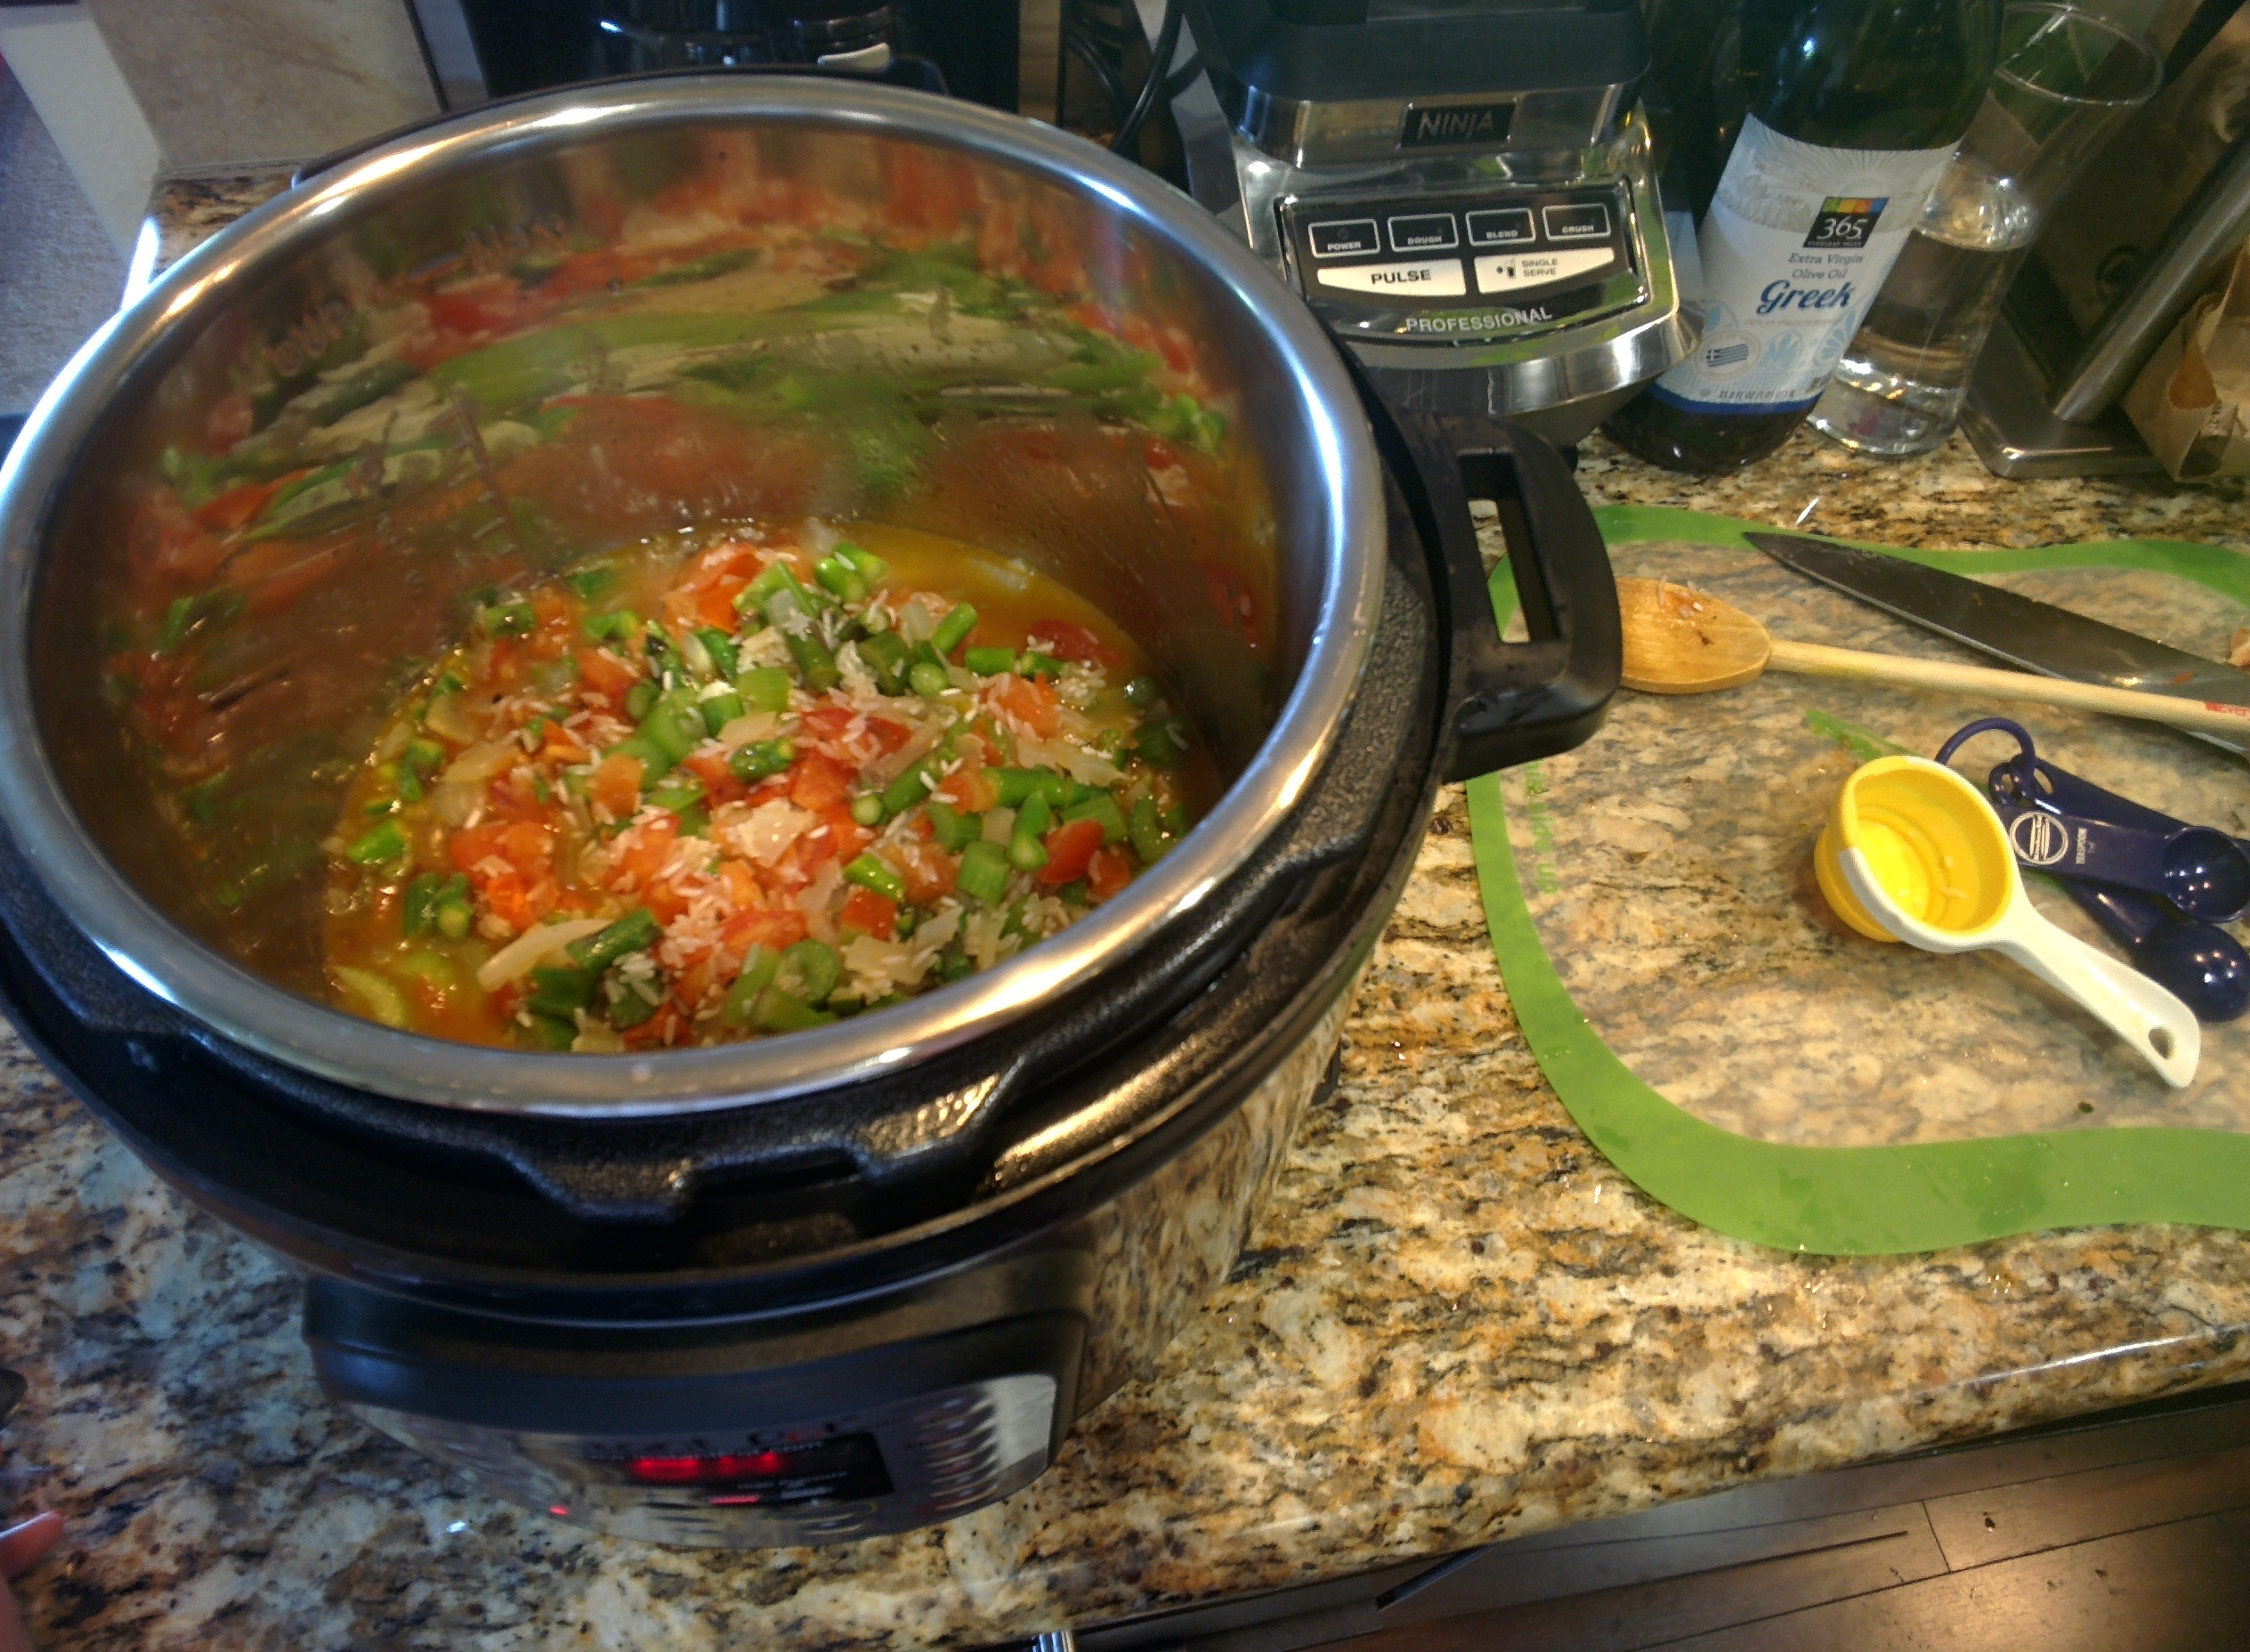 The InstantPot in action at a friend's home. It's a great way to be able to cook in someone else's home without worrying about cross contamination issues.